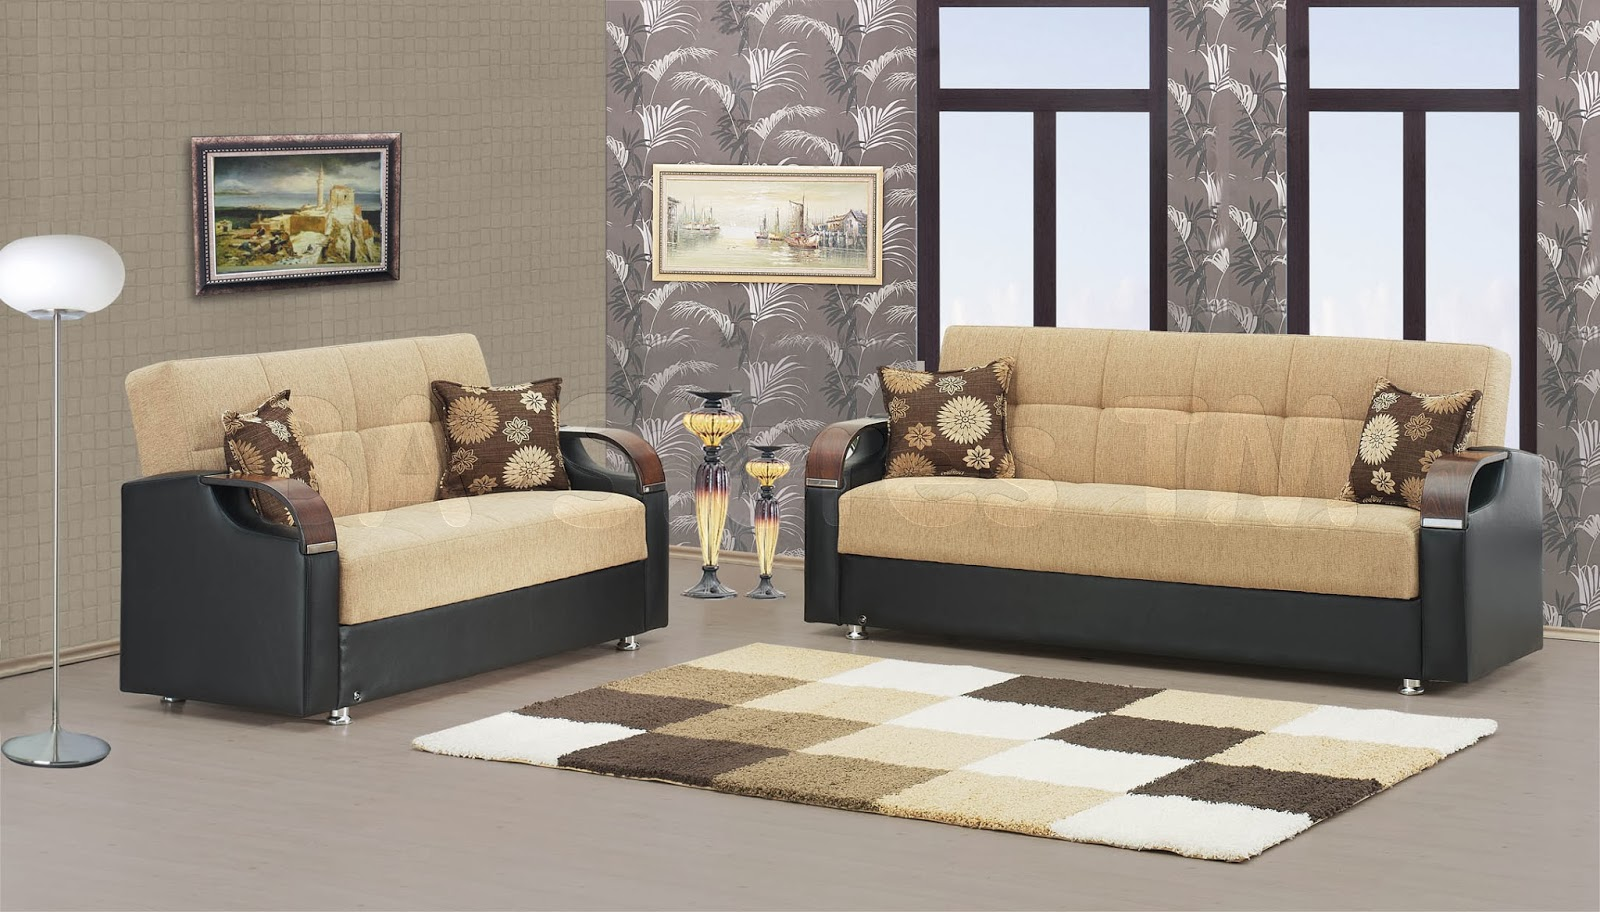 New fashion in sofa set design 2014 for Modern living sofa